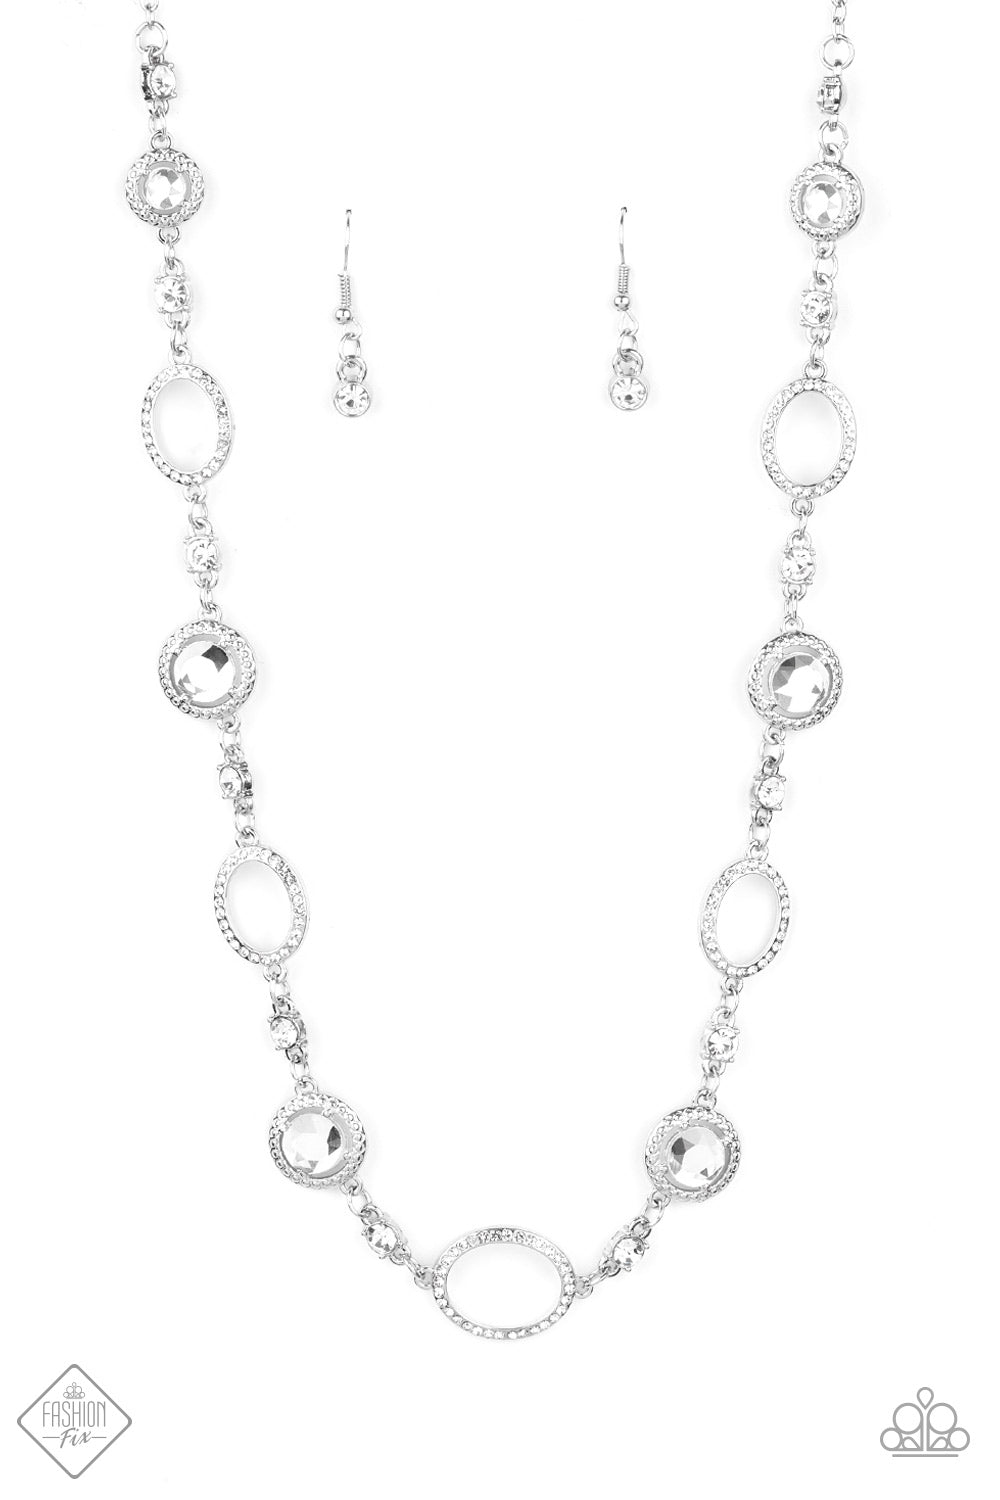 Paparazzi Necklace ~ Pushing Your LUXE - Fashion Fix Nov 2020 - White